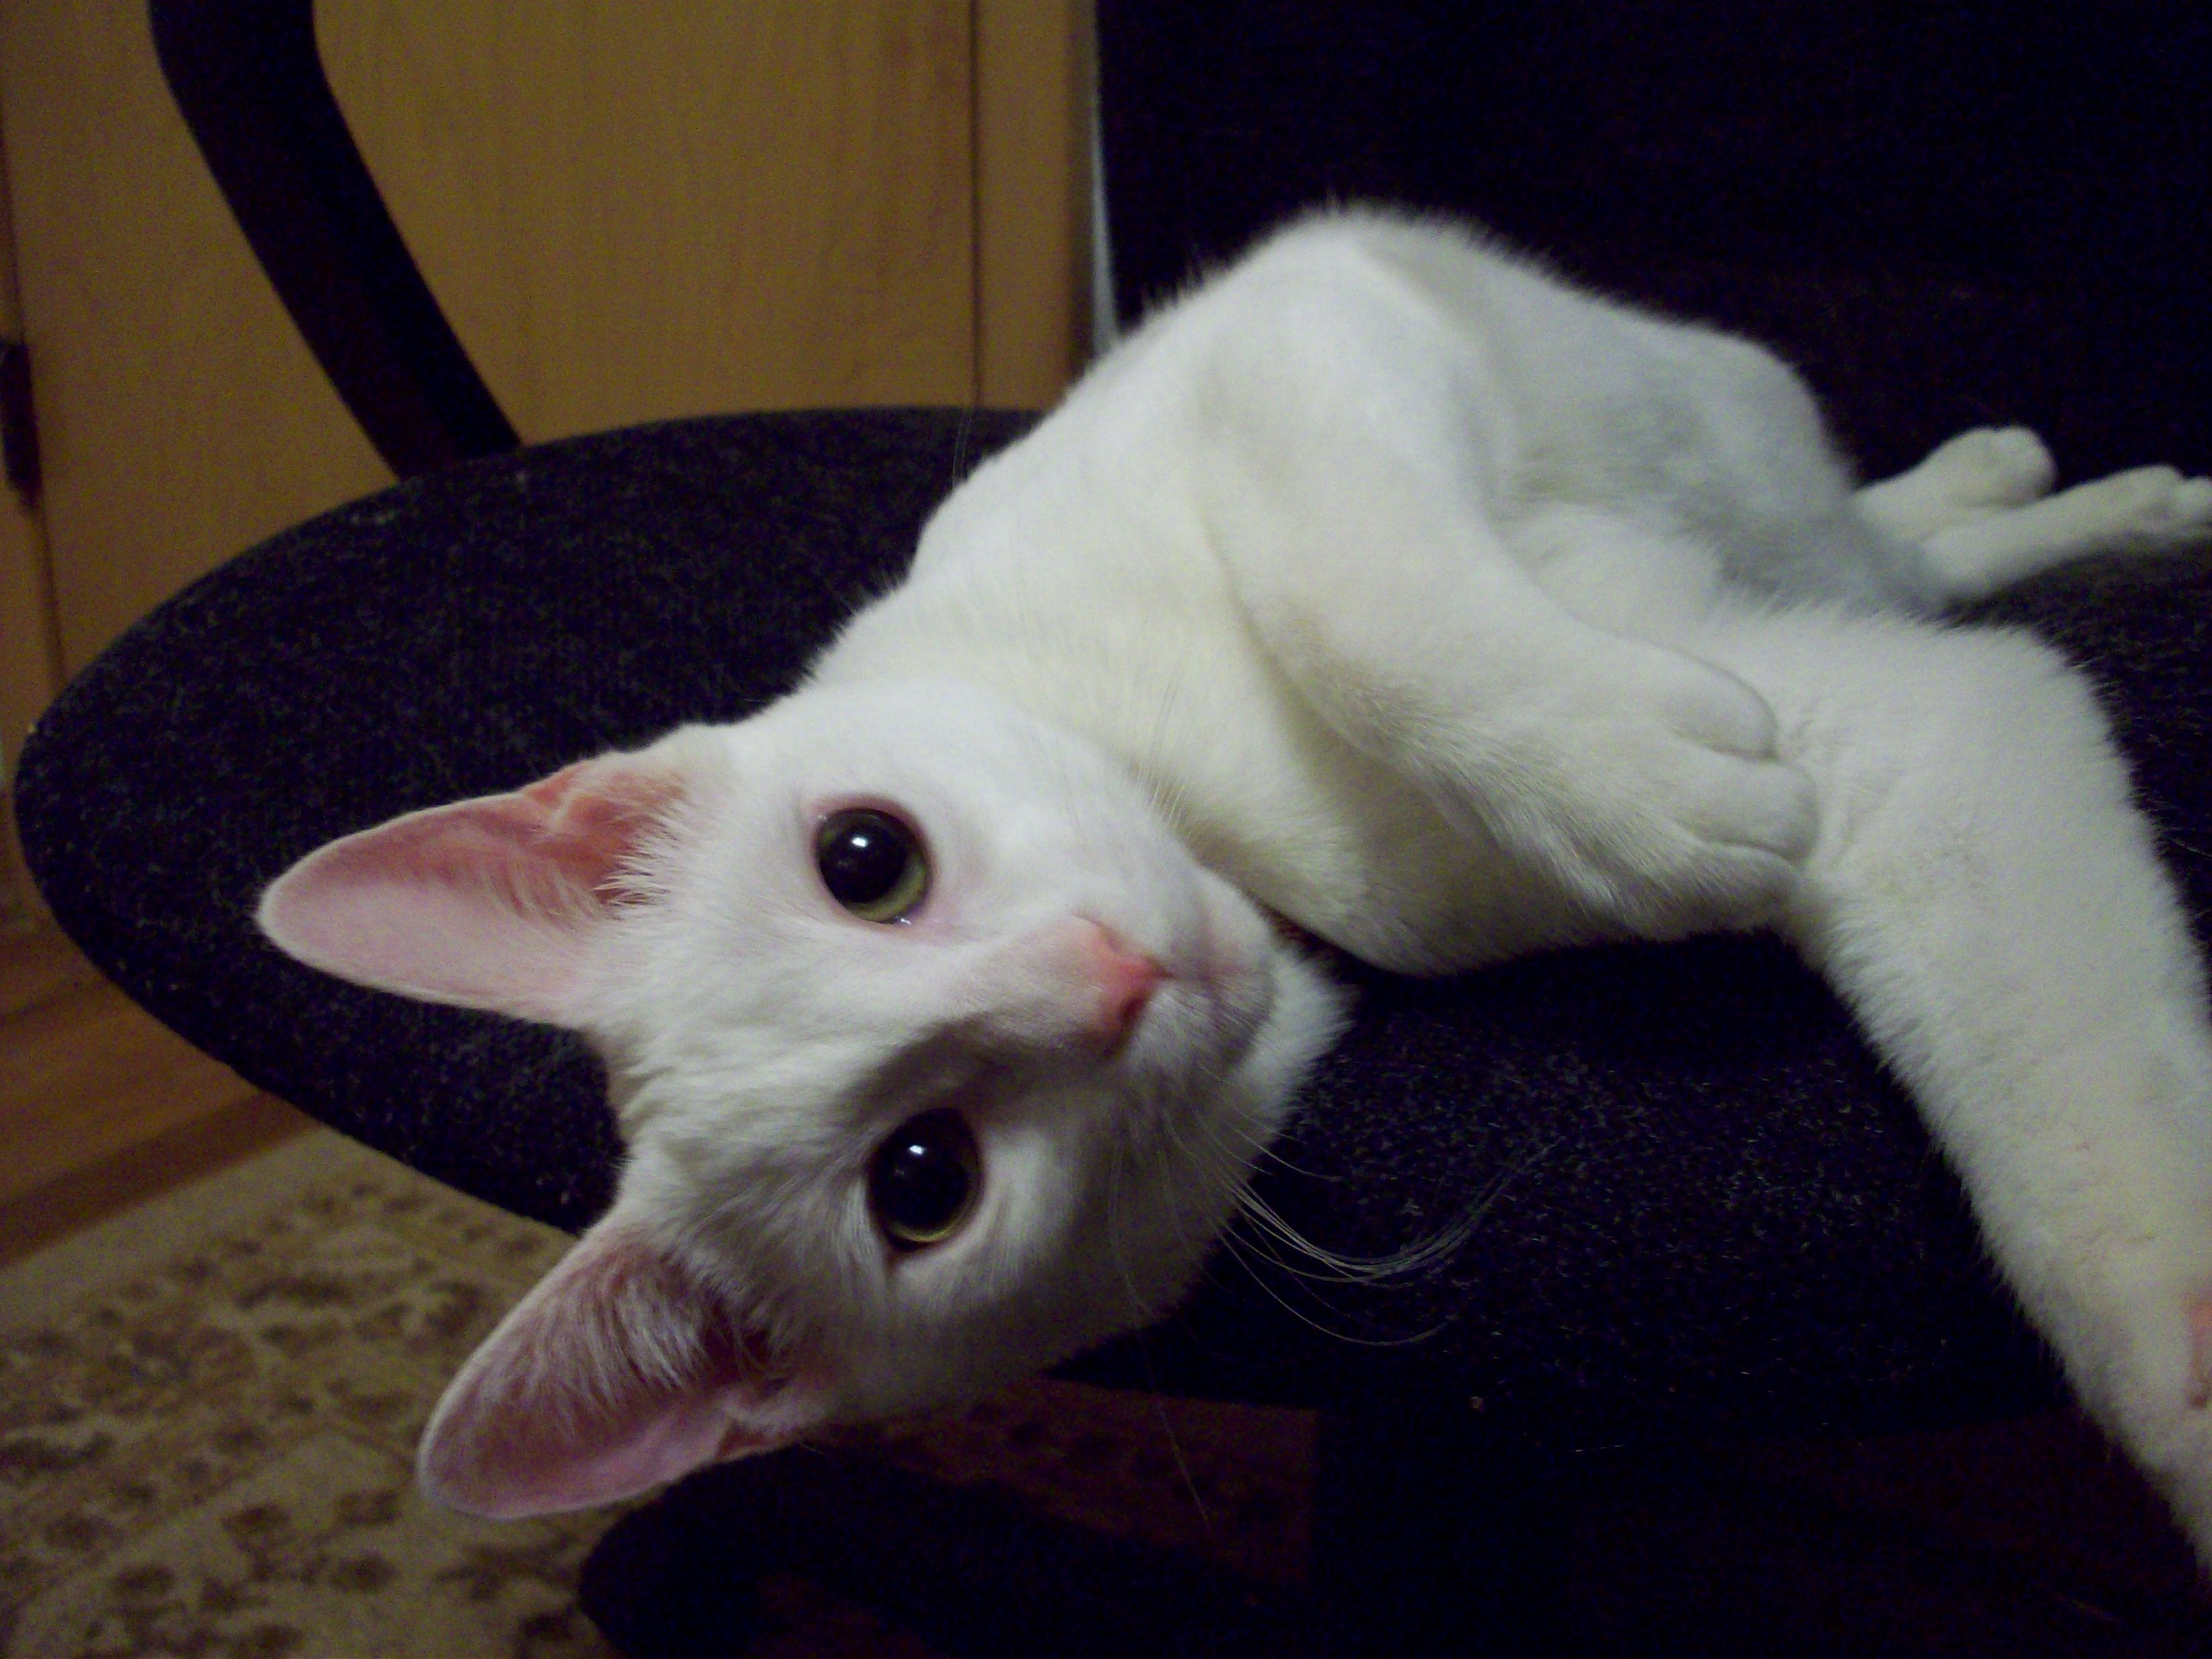 My little boy Quincy #welovewhitepets